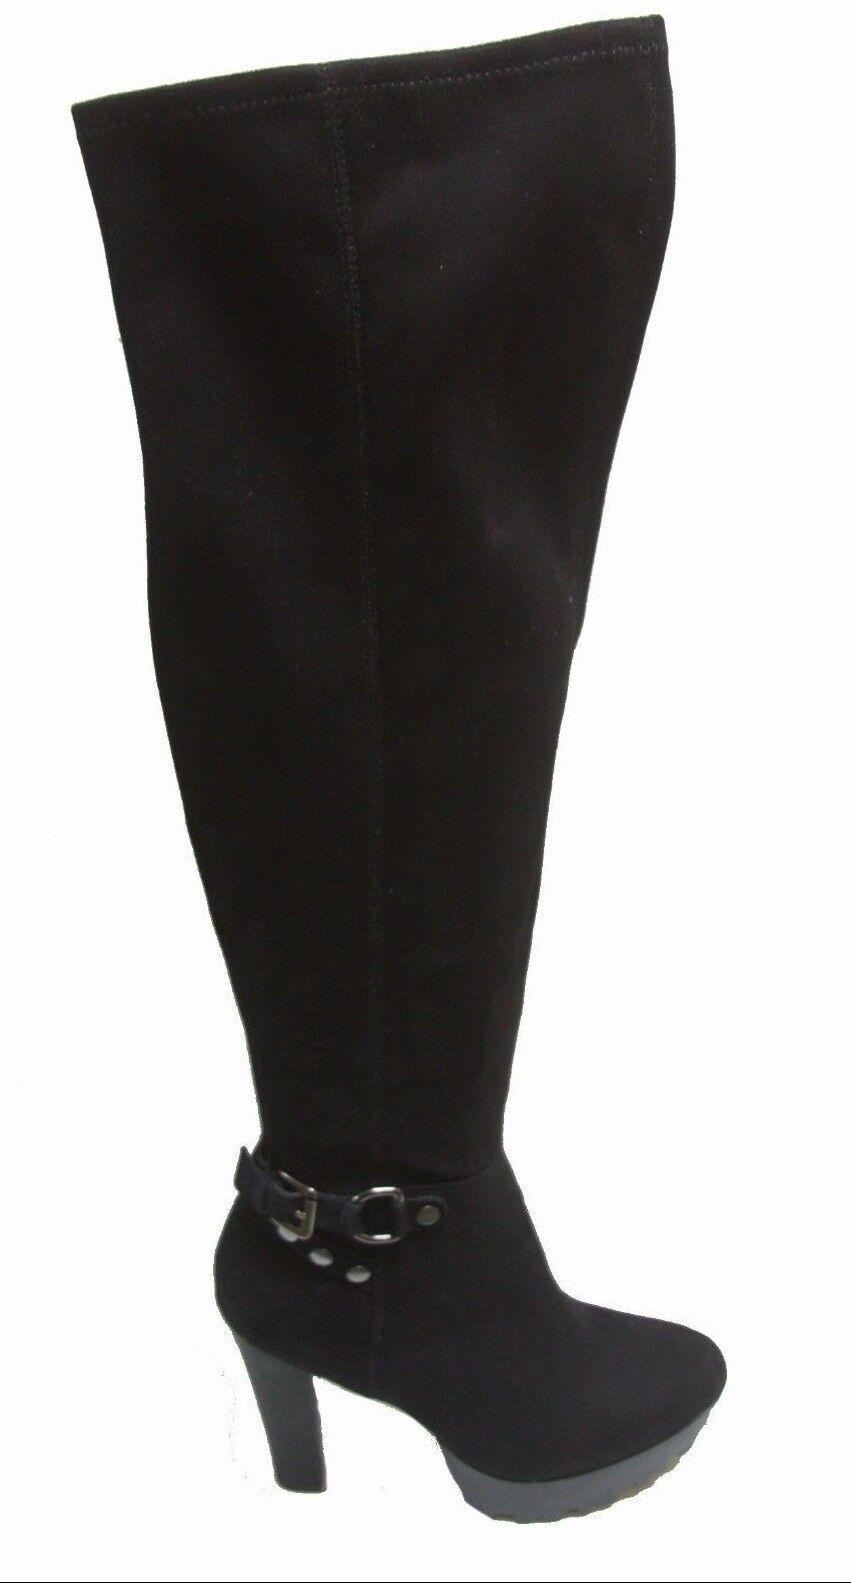 Womens Guess Cilantro 2 Black Knee High Boot Sz 9.5 NWOB  179